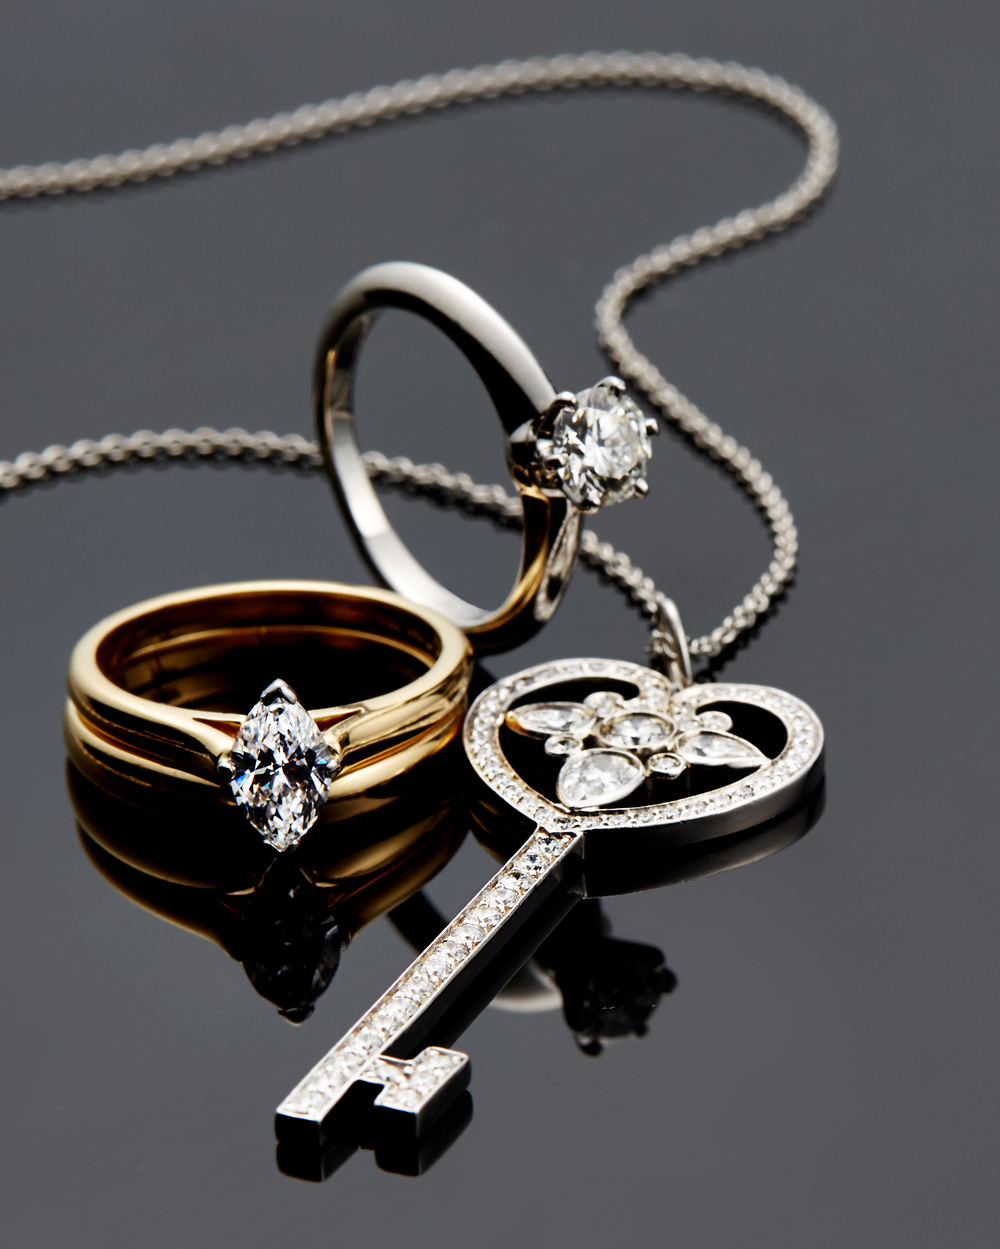 Estate_Jewelry_Tiffany_Fine_Jewelry_1093336547_Editorial.jpg